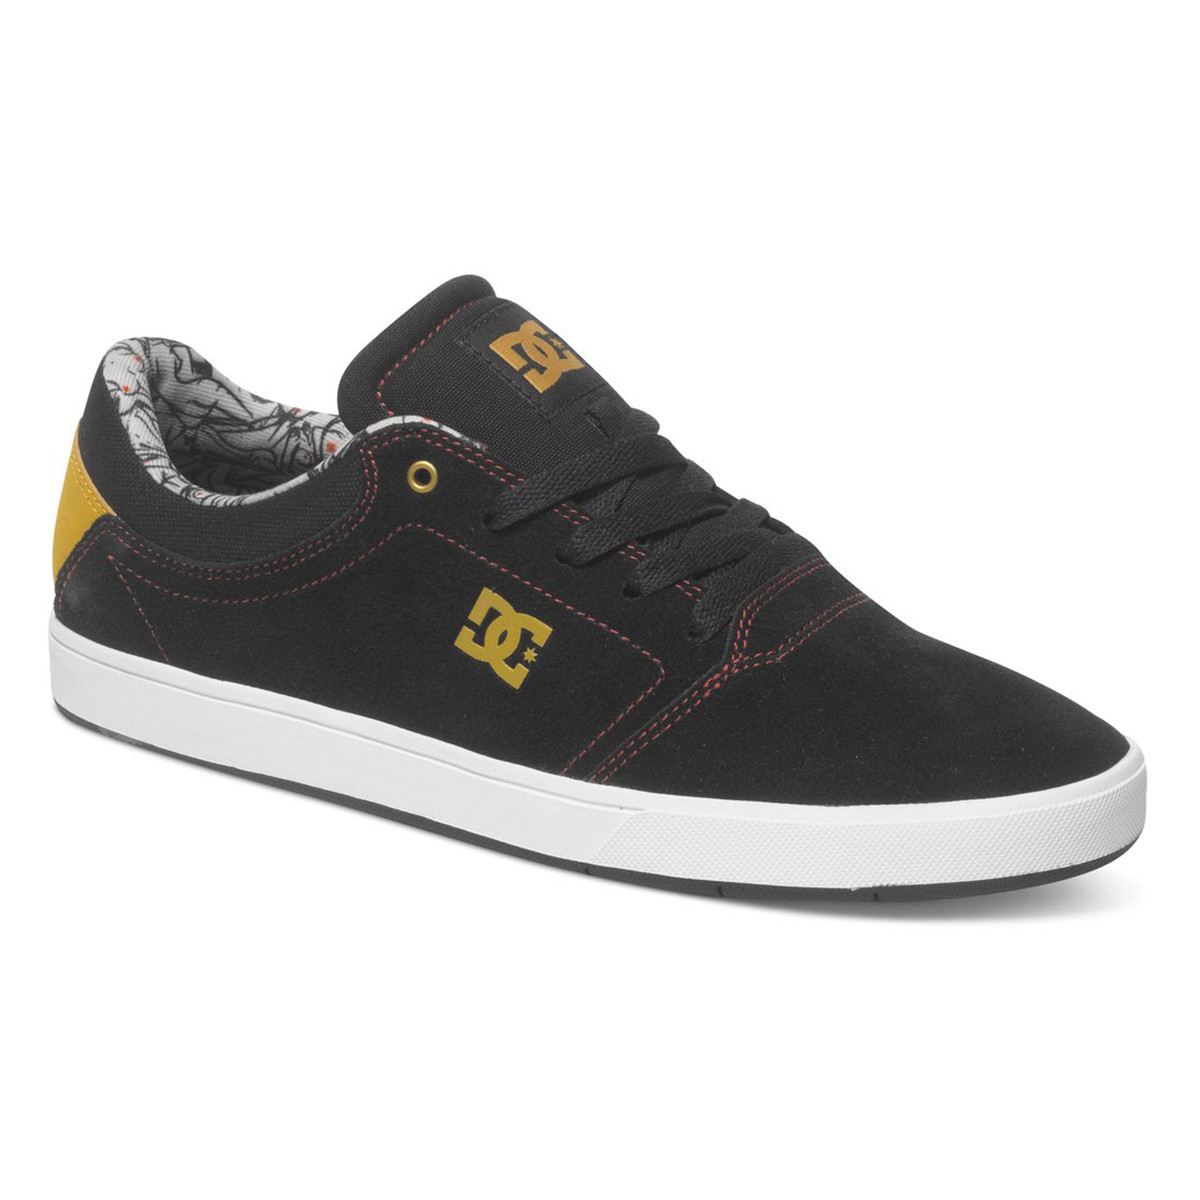 DC Shoes Crisis Chaussure Homme  - Chaussures Chaussures de Skate Homme